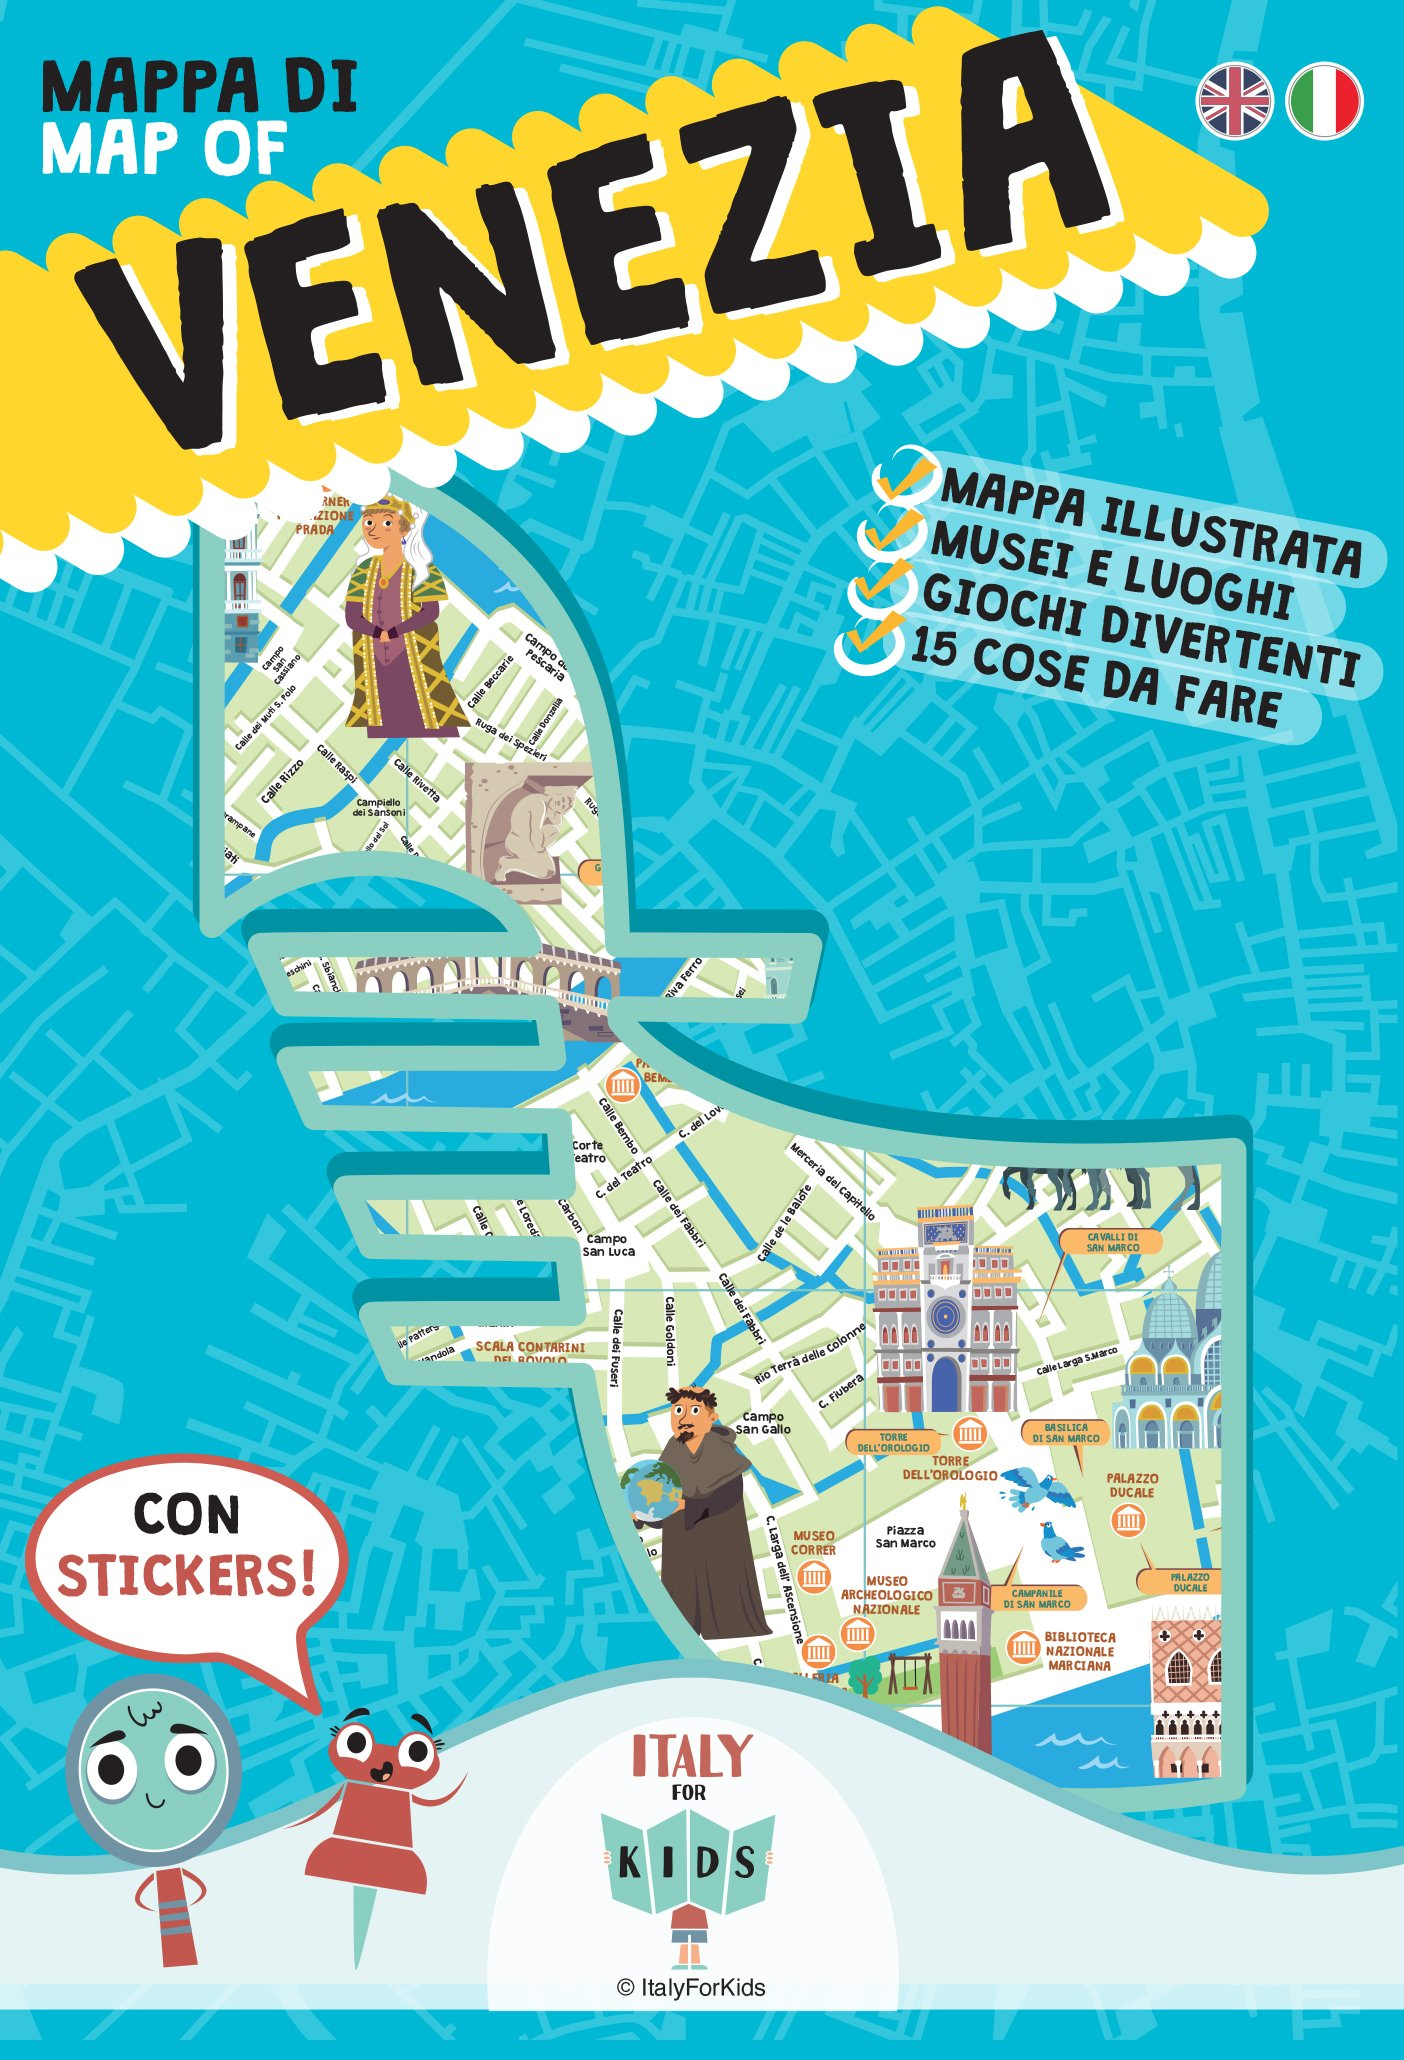 Cartina Venezia Download.Mappa Di Venezia Illustrata Con Adesivi Ediz Italiana E Inglese Amazon It Sara Dania Piva Donata Cerato M O Sullivan C Libri In Altre Lingue